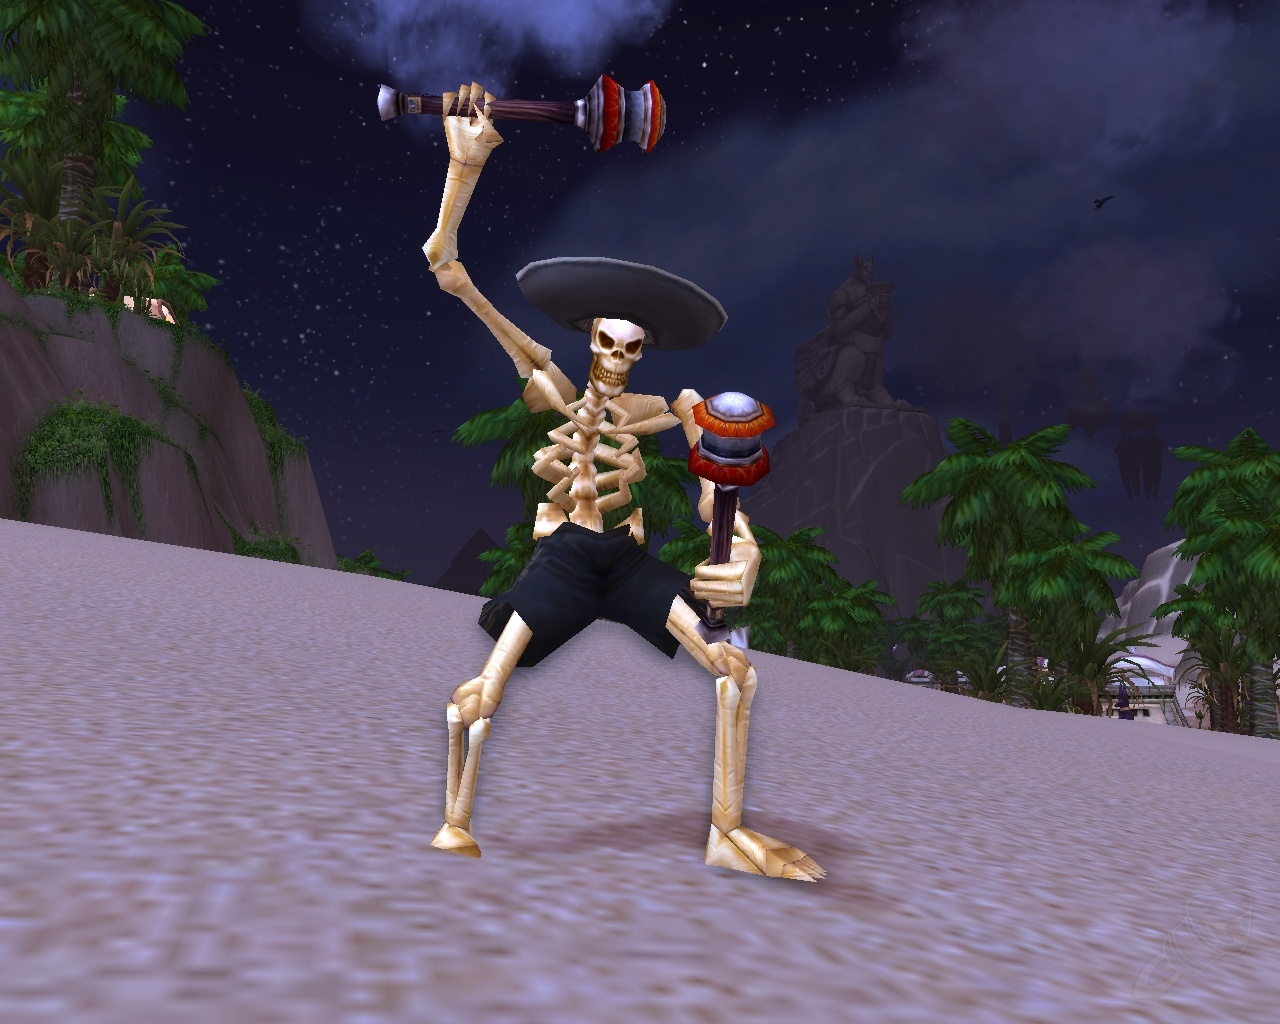 pre-BfA Macabre marionette, hat and shorts in the right place.